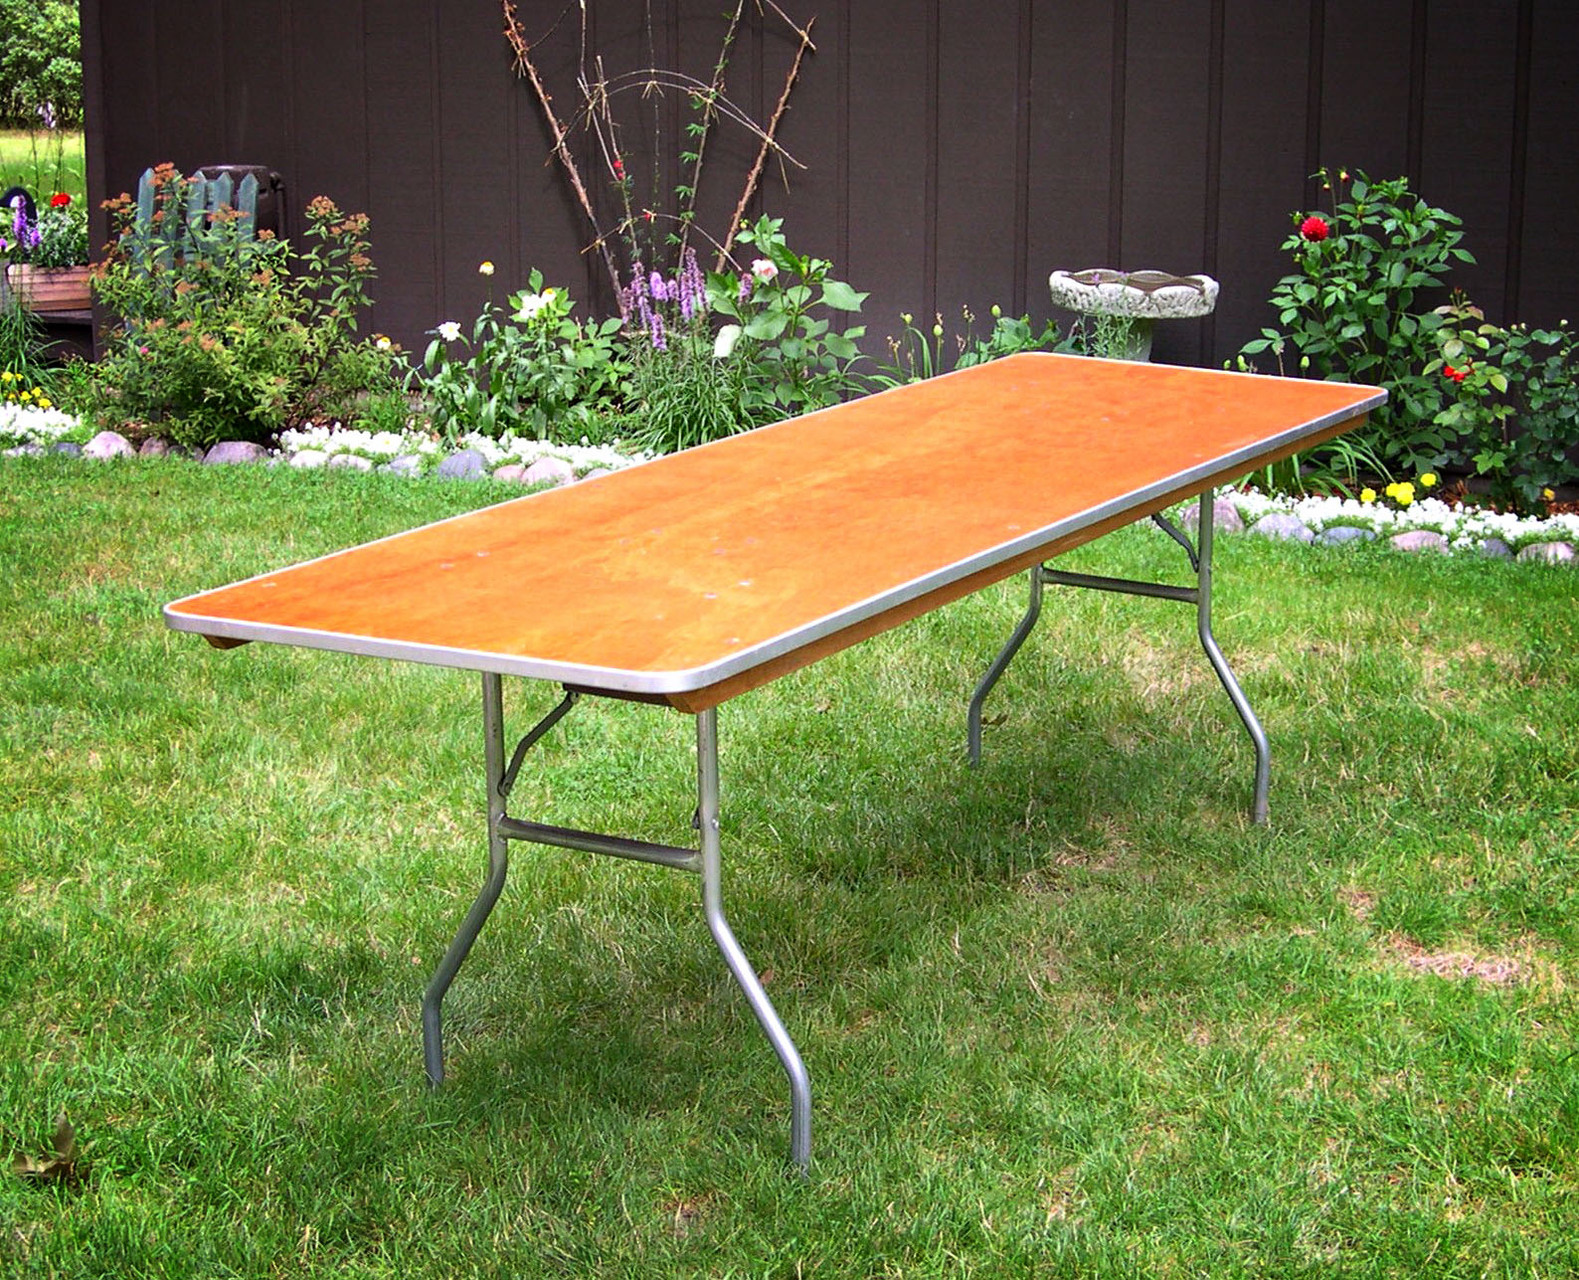 8ft Banquet tables